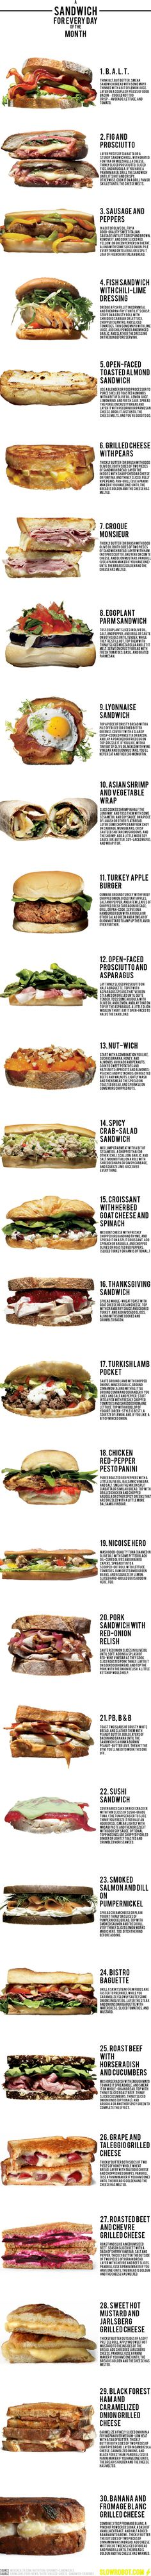 sandwich ideas x 30. OMG THE GOD CHART